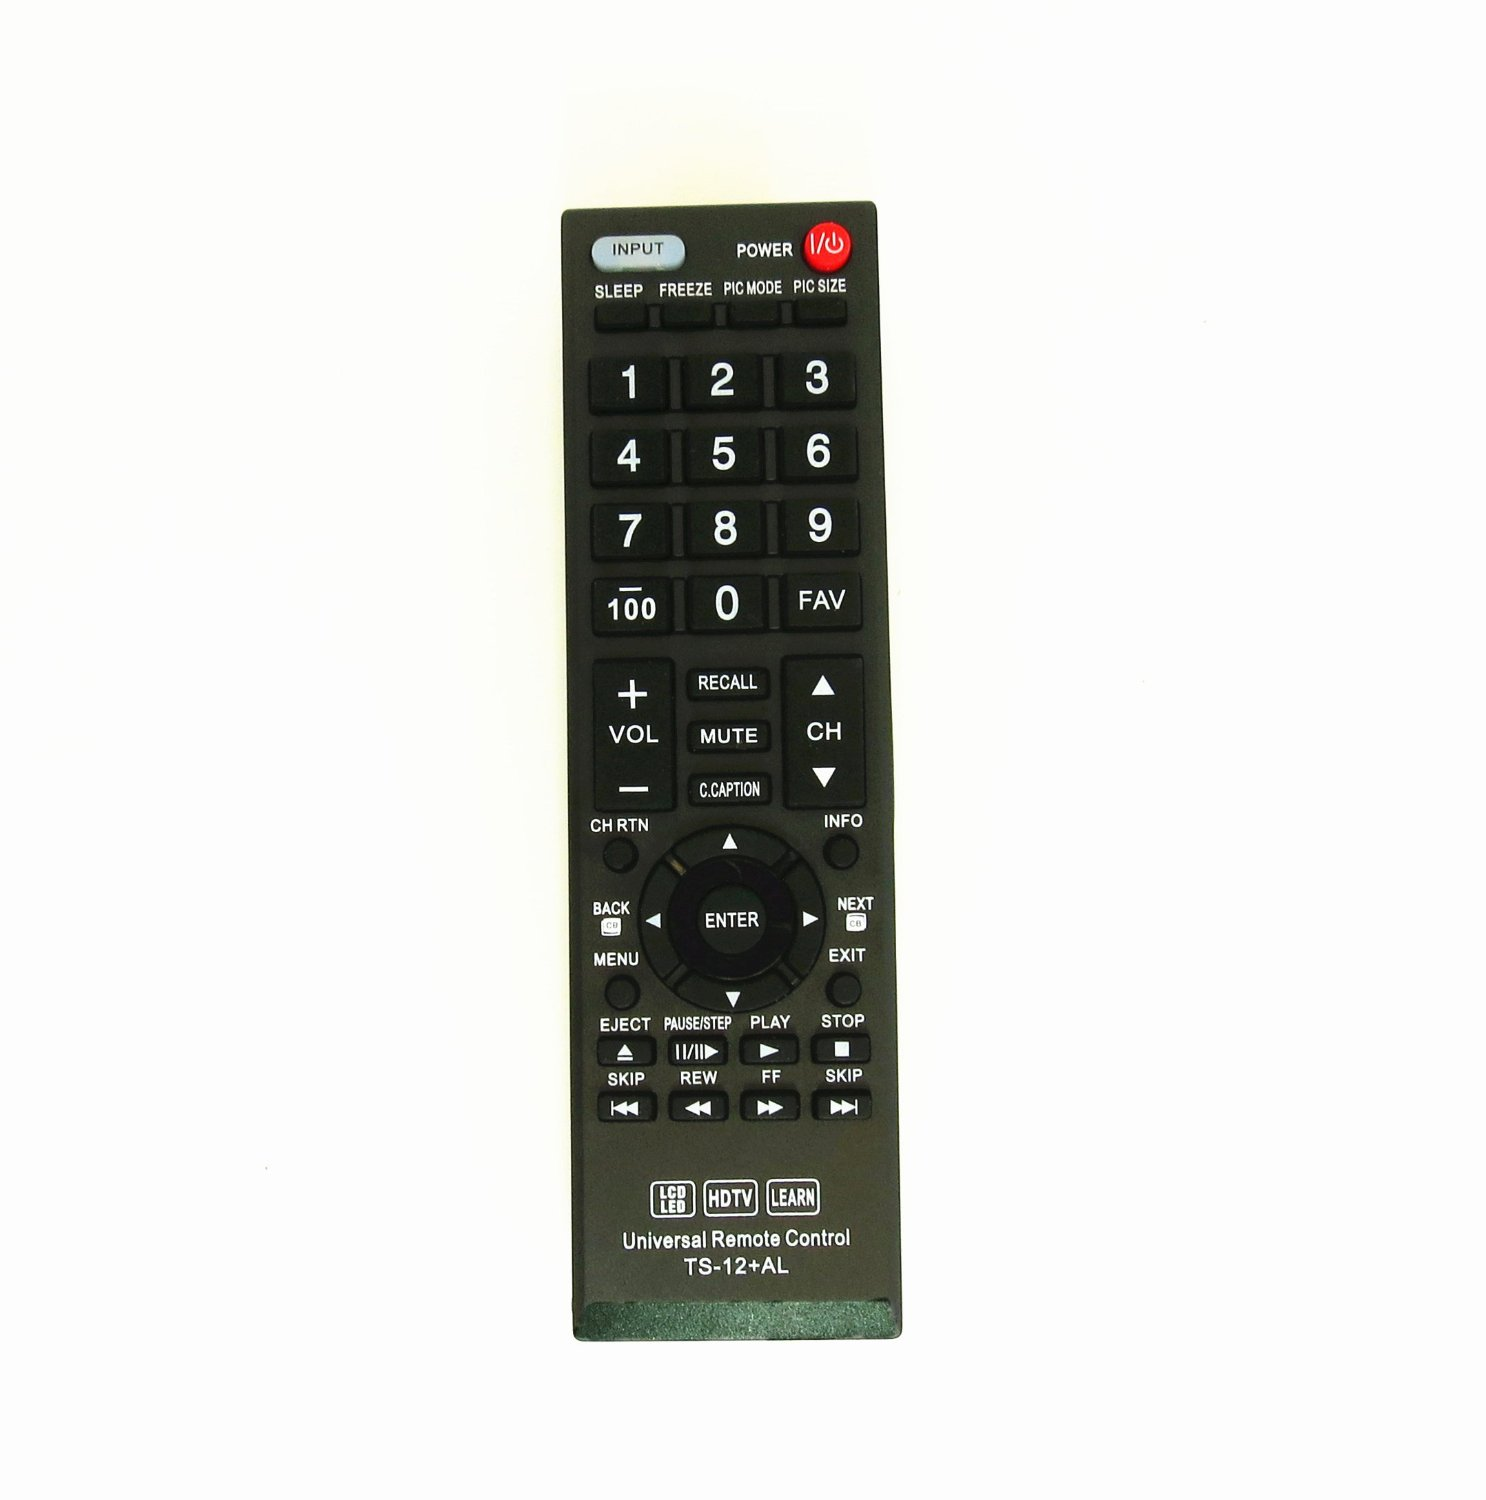 Gvirtue Universal Remote Control Compatible Replacement for Toshiba TV/ HDTV/ LCD/ LED, CT-90325 CT-90326 CT-90329 CT-8037 CT-90302 CT-90275 CT-90 CT-90366